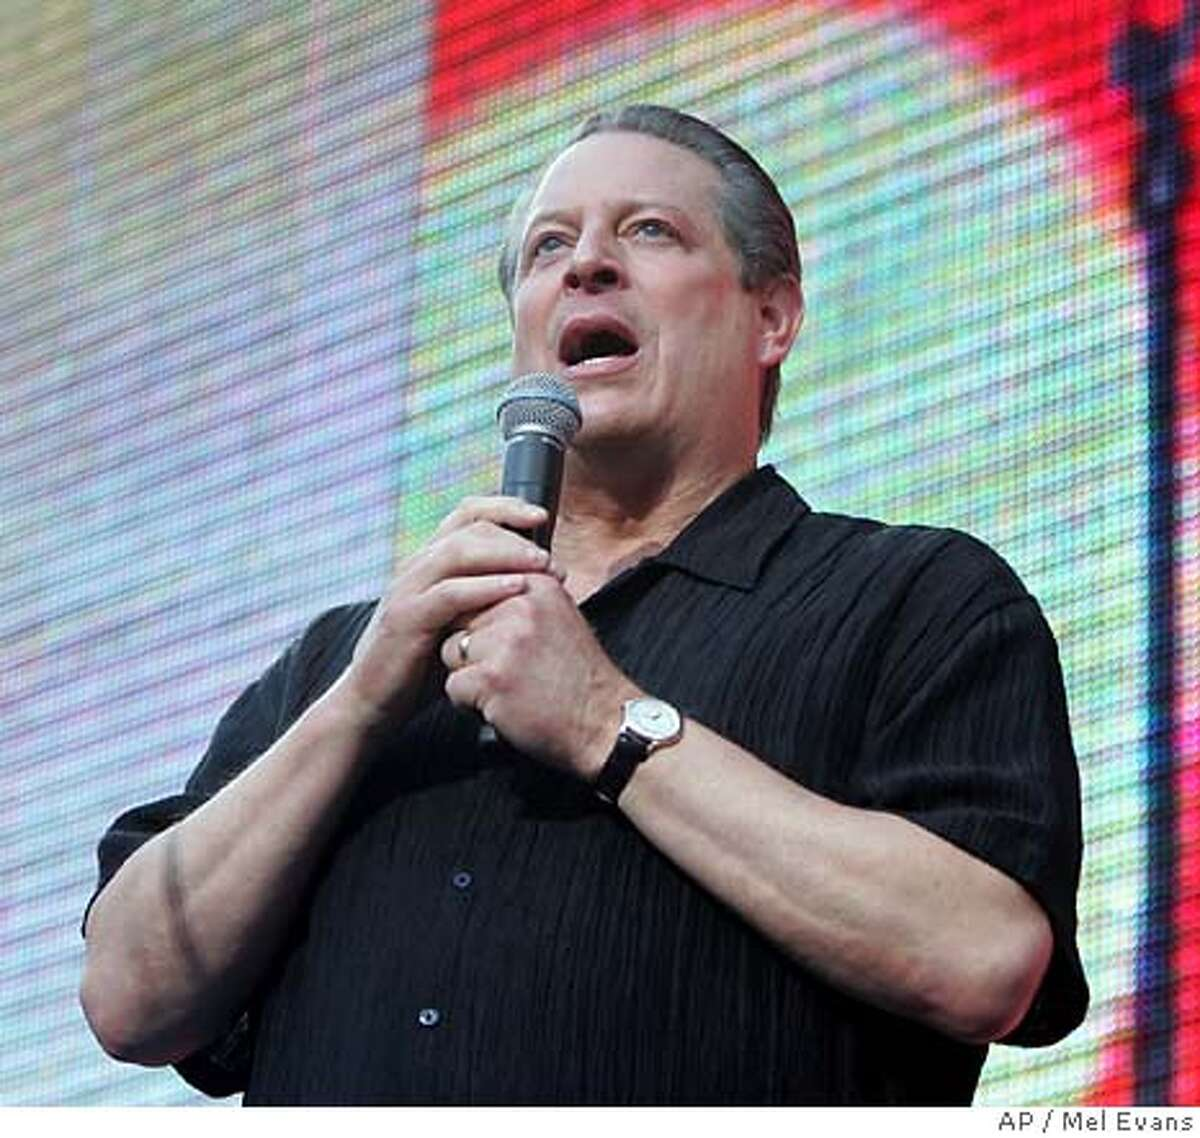 Al Gore speaks to the crowd at the Live Earth concert at Giants Stadium, Saturday, July 7, 2007 in East Rutherford, N.J., that was part of a 24-hour series spanning seven continents to raise awareness for global warming. On Wednesday July 11, 2007, in Trenton, N.J., a scientific report, Confronting Climate Change In The U.S. Northeast, was released. Wilting heat, deadly storms, flash floods, coastal erosion and more days with unhealthful air are just some of the effects of rising temperatures on the northeast, a group of scientists reported Wednesday. urging governments to take steps now to avoid the most devastating consequences of global warming. (AP Photo/Mel Evans) A JULY 7, 2007 PHOTO